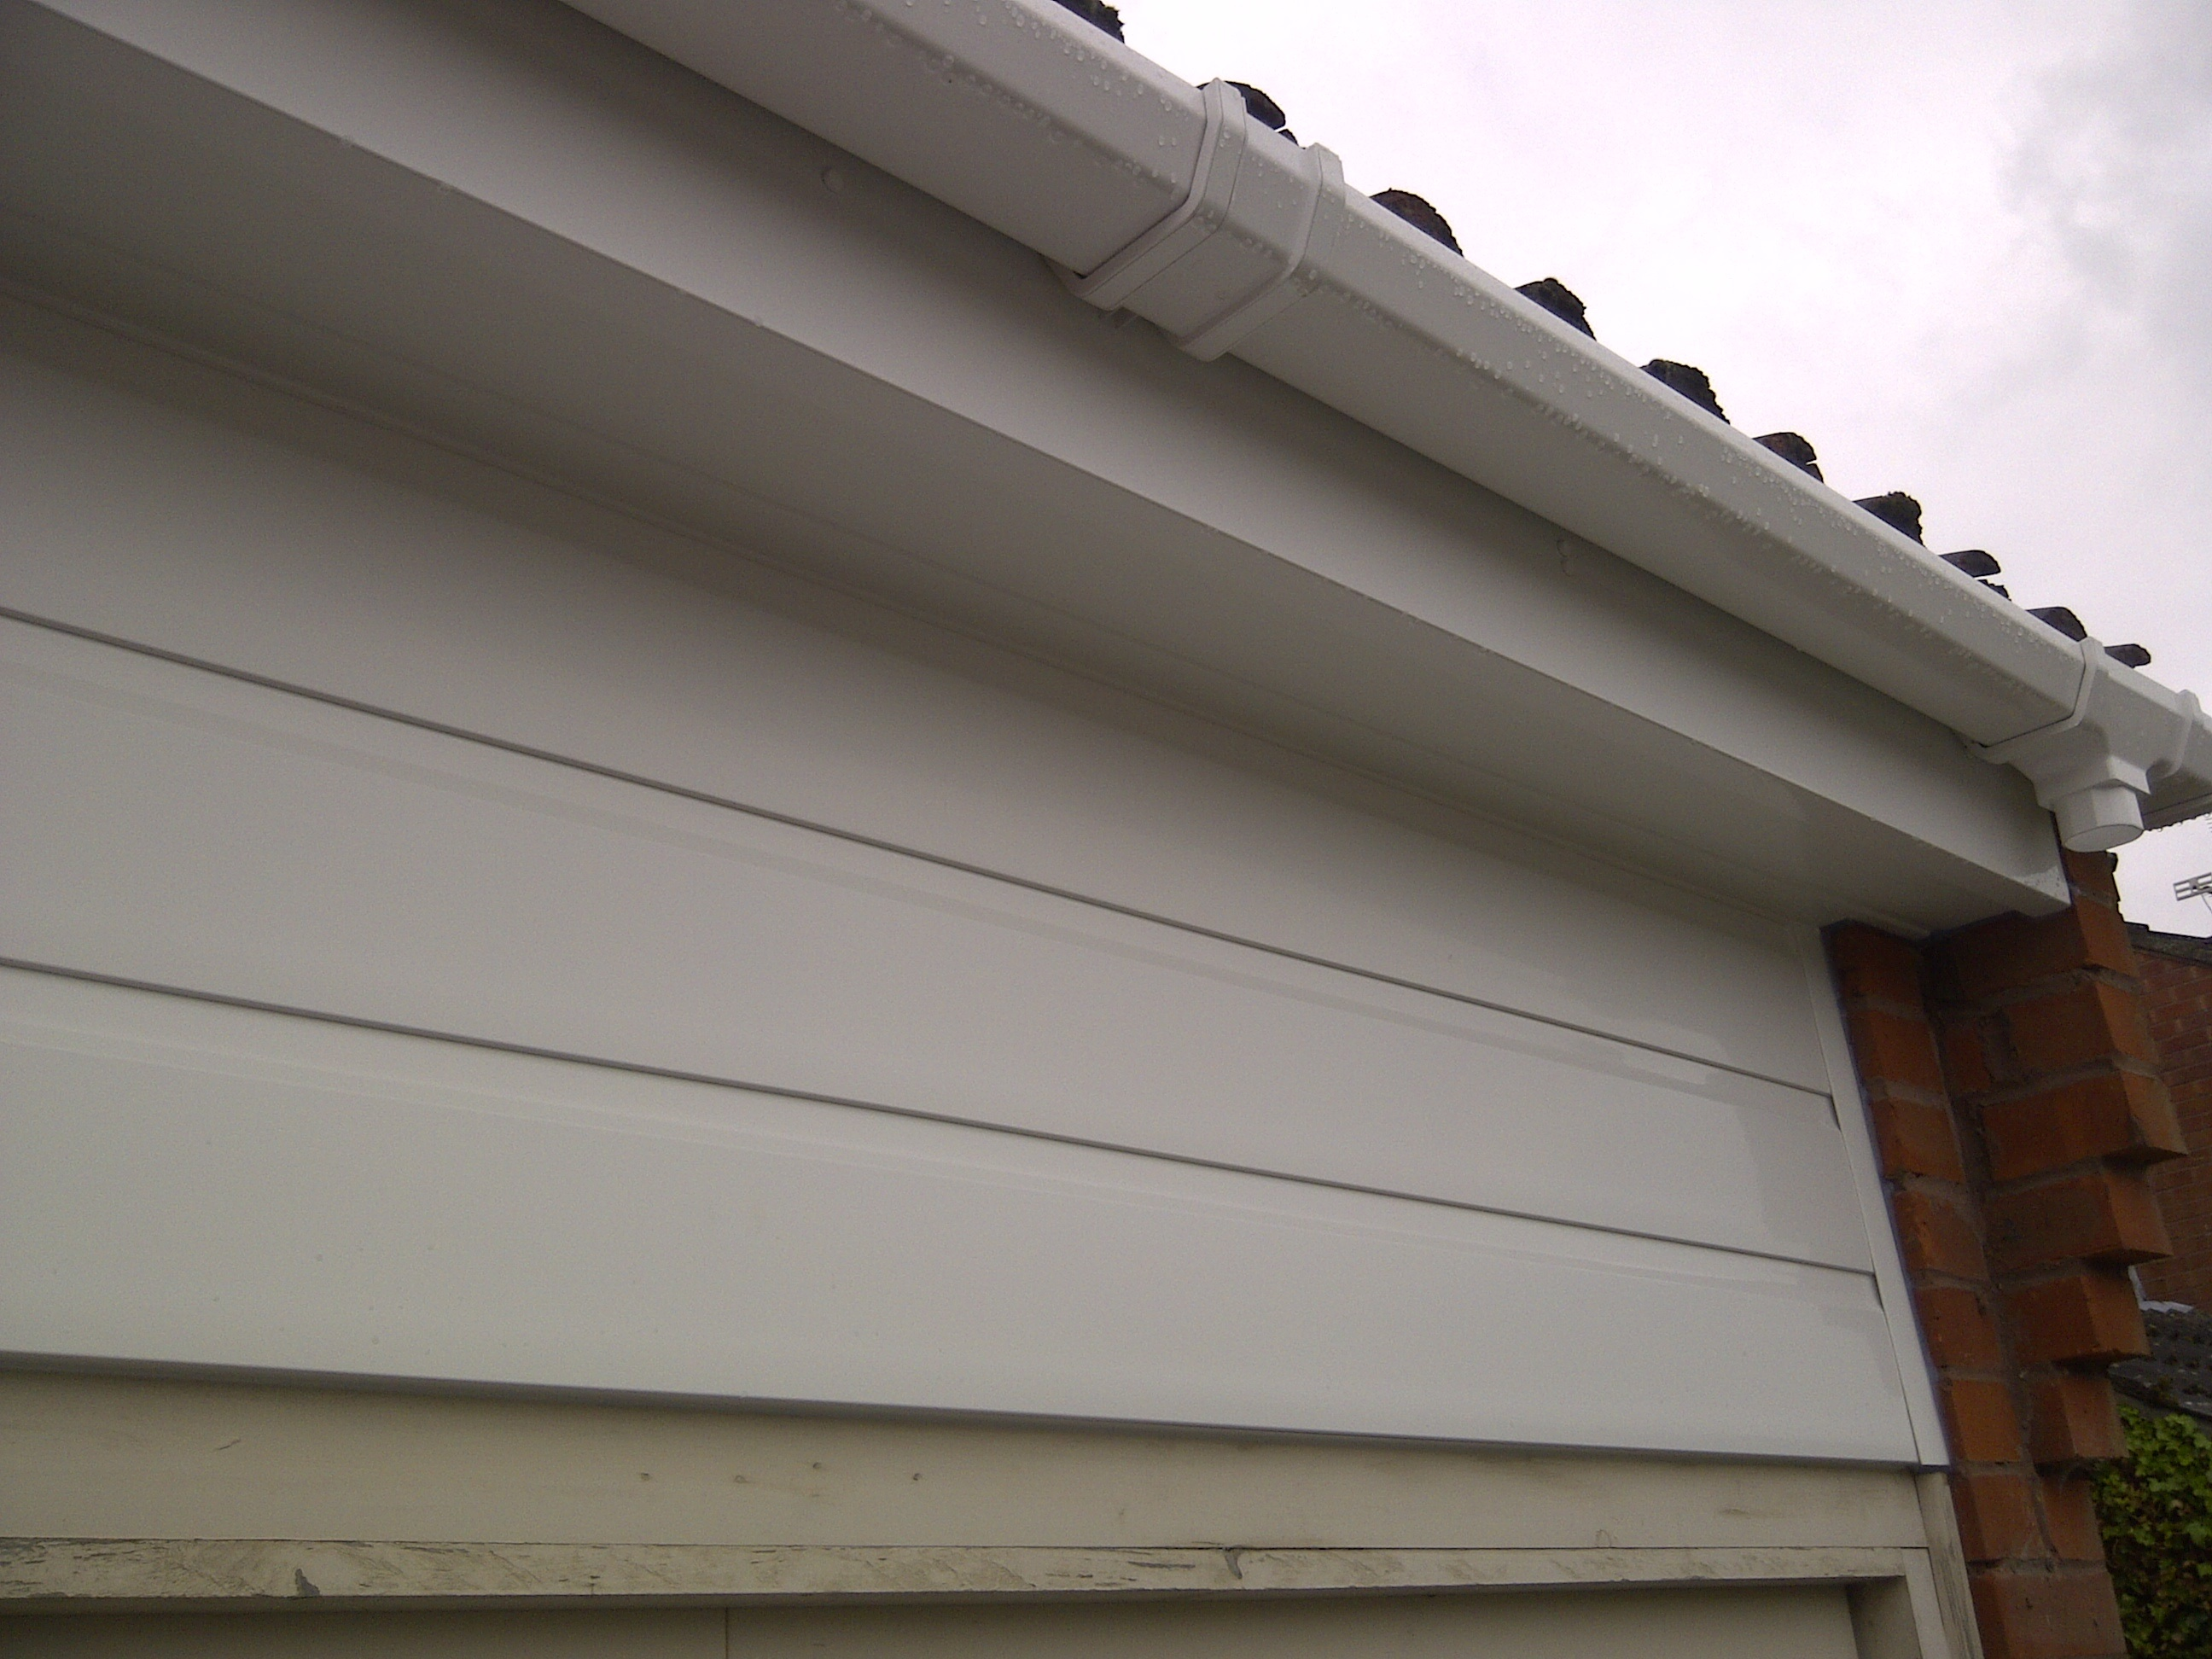 cladding and guttering,321 extension quotation, 321 lantern roof quotation, 321 Builder, 321 builder fleet, builder farnborough, builder hook, builder basingstoke, builder weybridge, builder walton, builder camberley, builder farnham, builder Liss, builder frimley, builder sandhurst, builder binfield, builder wokingham, builder temple park, builder woosehill, builder winnersh, builder reading,321 landlord lettings management, lettings management, manage letting, manage BTL, 321 office staff Farnborough, office staff Camberley, bookkeeper Cranleigh, Guildford, Fleet, Farnham, Hook, Old Basing, Basingstoke, Oakley, bookkeeper Winchester, bookkeeper Sandhurst, Staines, Epsom, Leatherhead, Send, Woking, Wimbledon, High Wycombe, Crowthorne, Addlestone, Godalming, Aldershot, Bentley, Dorney, Burnham Common, Wokingham, Newbury, Oxford, Marlow, Basingstoke, Andover, Winchester, Romsey, Bordon, Yateley, Wasing, Reading, Chieveley, Burleigh, Barkham, Hurst, Owlsmoor, Lightwater, Windlesham, Wentworth, Sunningdale, Windsor, Chobham, Chertsey, Chilworth, Haslemere, Hindhead, Compton, Milford, Ewhurst, Bookham, Oxshott, Weybridge, West Byfleet, Byfleet, Block Paved Driveways quotations, Window Price and Window replacement Quotation,Building Work, Building quotations, Carpentry quotations, Conservatory Quotations, Door replacement quotations, door installations,Extension Quotations for Domestic Building,UPVC external house cleaning price,Fascias and Gutters Quotations and installations, Flooring specialists quotations, Garage Conversion Specialists, garage conversion price, Painting and Decoratoring quotation service,Patio quotations and installations,Plastering quotation, Plumbing quotation,Roofing quotation, Farnborough, Camberley, Cranleigh, Guildford, Fleet, Farnham, Hook, Old Basing, Basingstoke, Oakley, Winchester, Sandhurst, Staines, Epsom, Leatherhead, Send, Woking, Wimbledon, High Wycombe, Crowthorne, Addlestone, Godalming, Aldershot, Bentley, Dorney, Burnham Common, Wokingham, Newbury, Oxford, Marlow, Basingstoke, Andover, Winchester, Romsey, Bordon, Yateley, Wasing, Reading, Chieveley, Burleigh, Barkham, Hurst, Owlsmoor, Lightwater, Windlesham, Wentworth, Sunningdale, Windsor, Chobham, Chertsey, Chilworth, Haslemere, Hindhead, Compton, Milford, Ewhurst, Bookham, Oxshott, Weybridge, West Byfleet, Byfleet, Request a FREE Home Extension or Building Quote, Request a FREE quote, Home Extension quote,  Building Quote, free quote, home improvement quote, price for extension, price for building work, price for lintel installation,